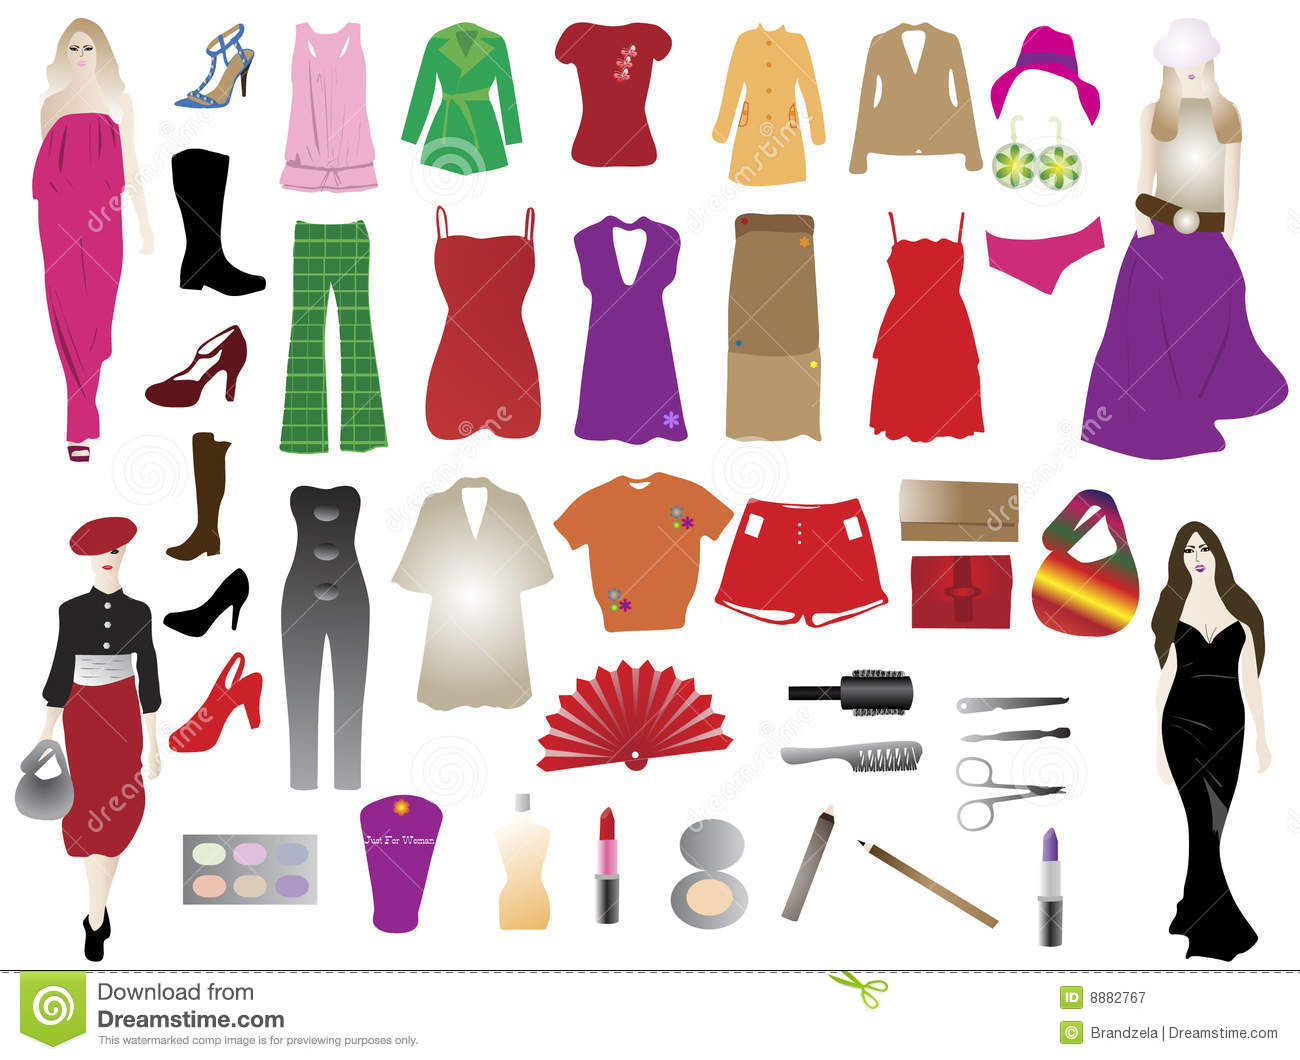 Fashion Silhouettes And Elements Royalty Free Stock